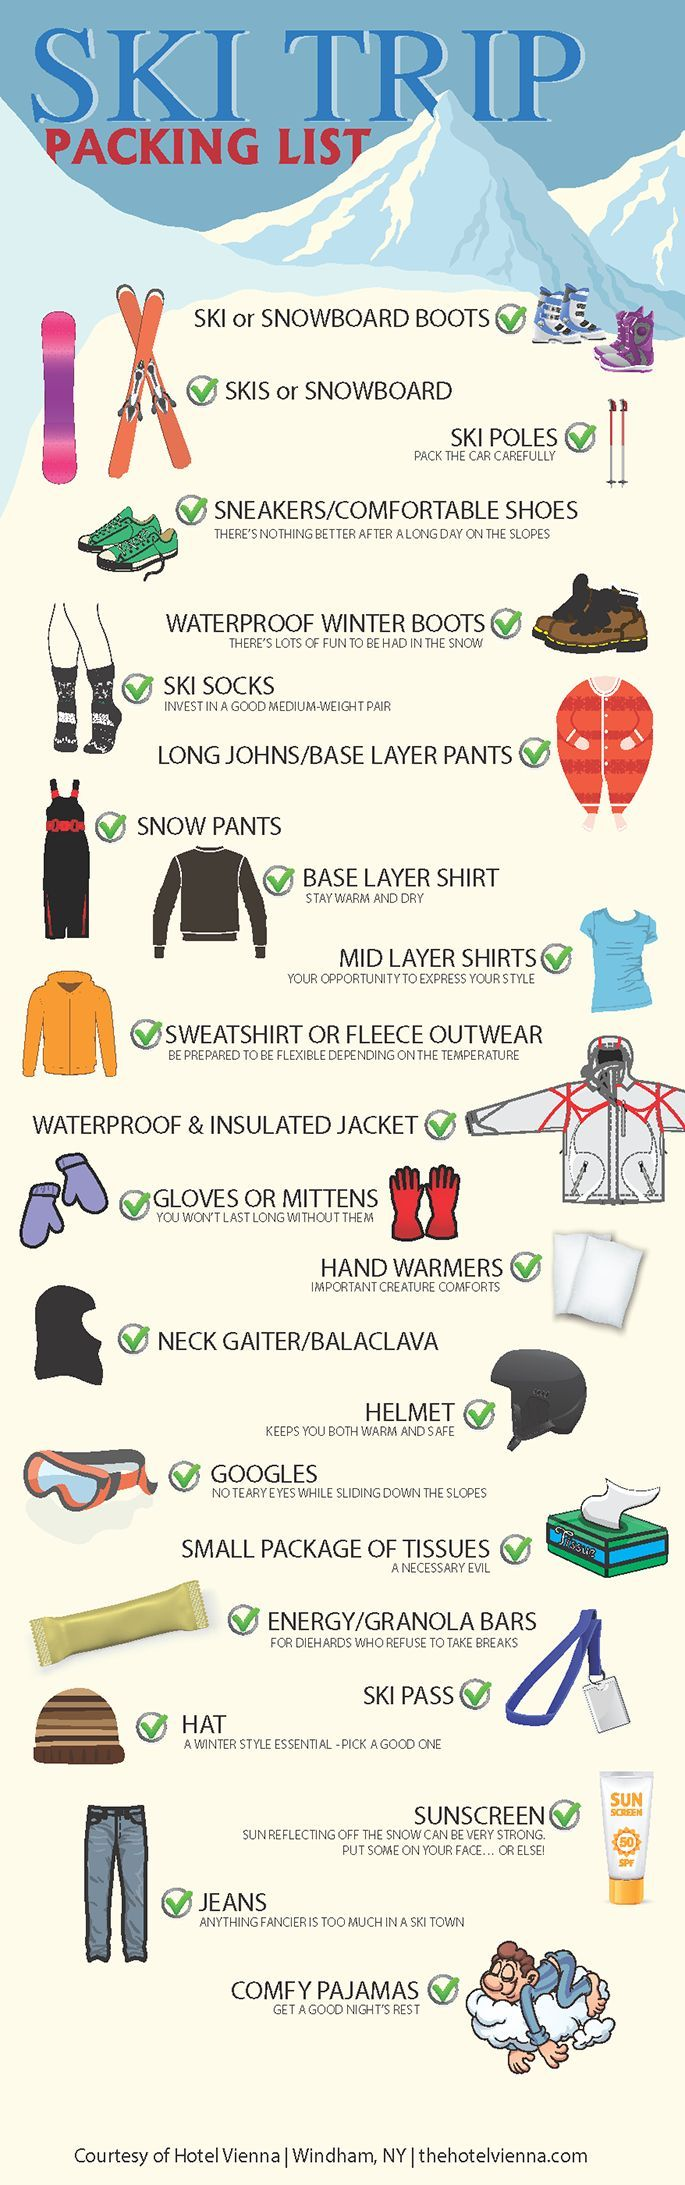 I'm dreaming of a white winther, away from home and with my friends. Skiing and drinking hot chocolate. What to pack for a ski trip - Ask.com Image Search: